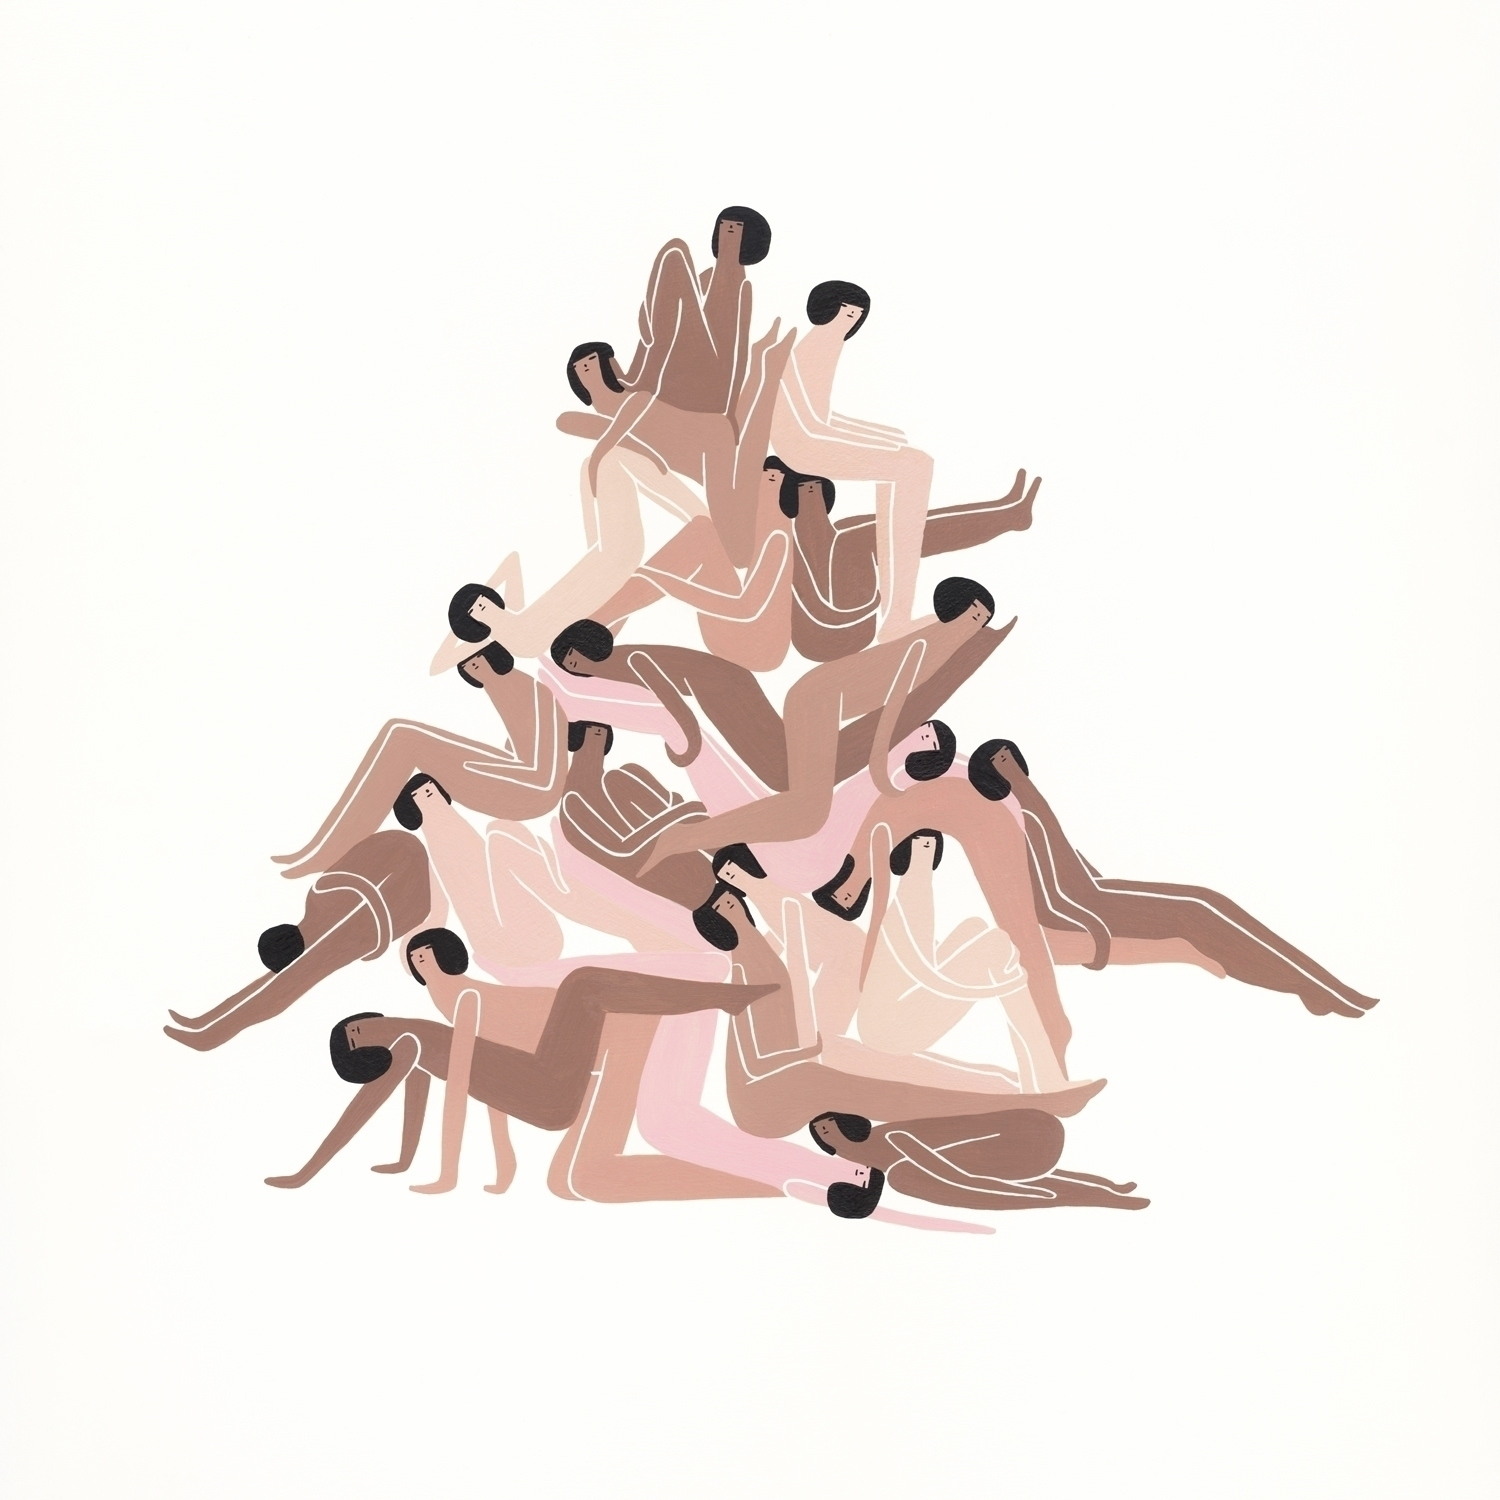 Togetherness Laura Berger Plann - mulegallery | ello